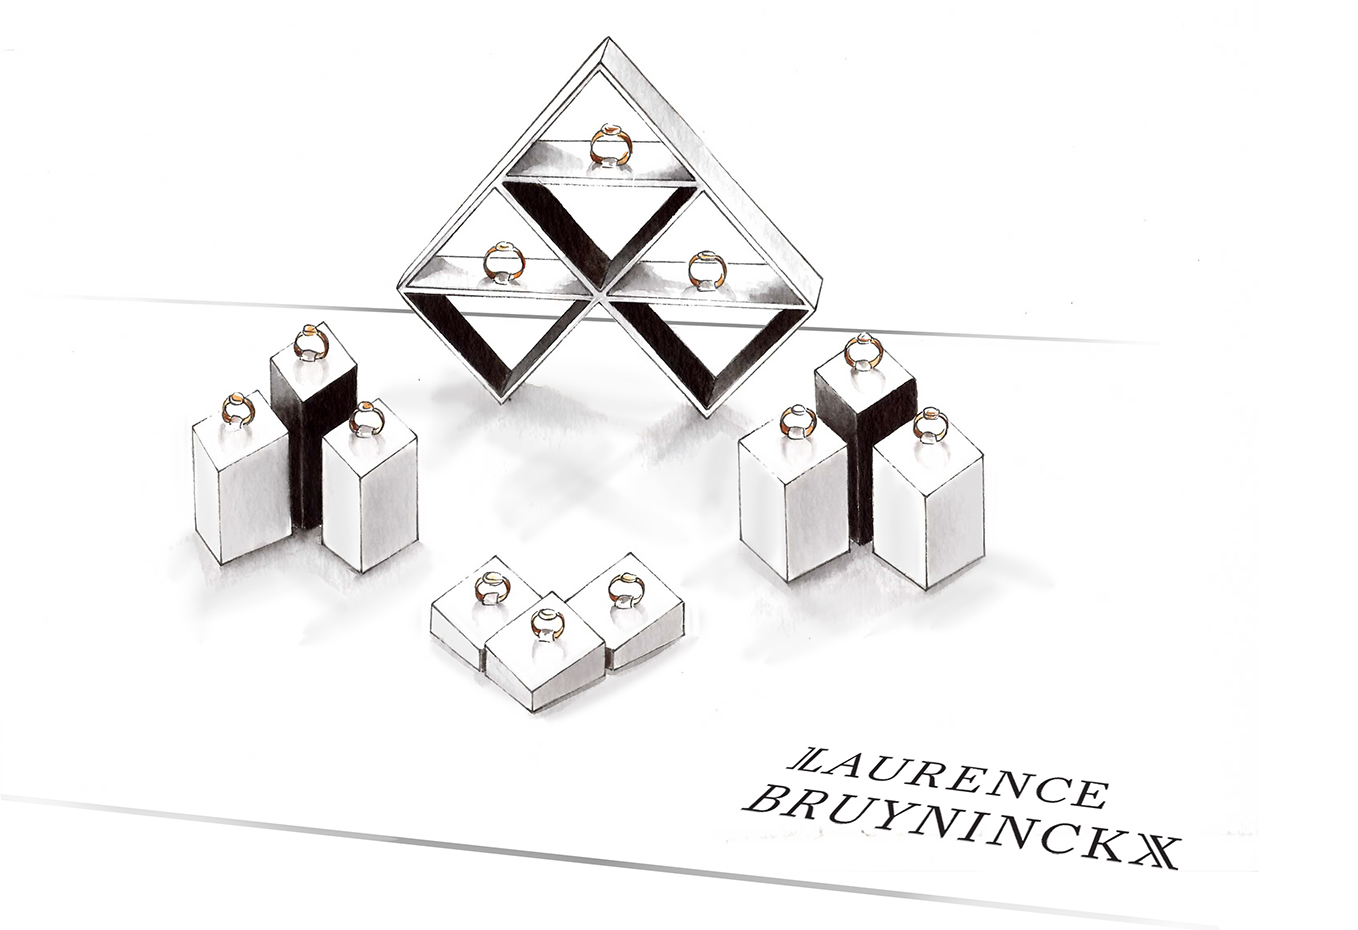 LX Laurence Bruyninckx